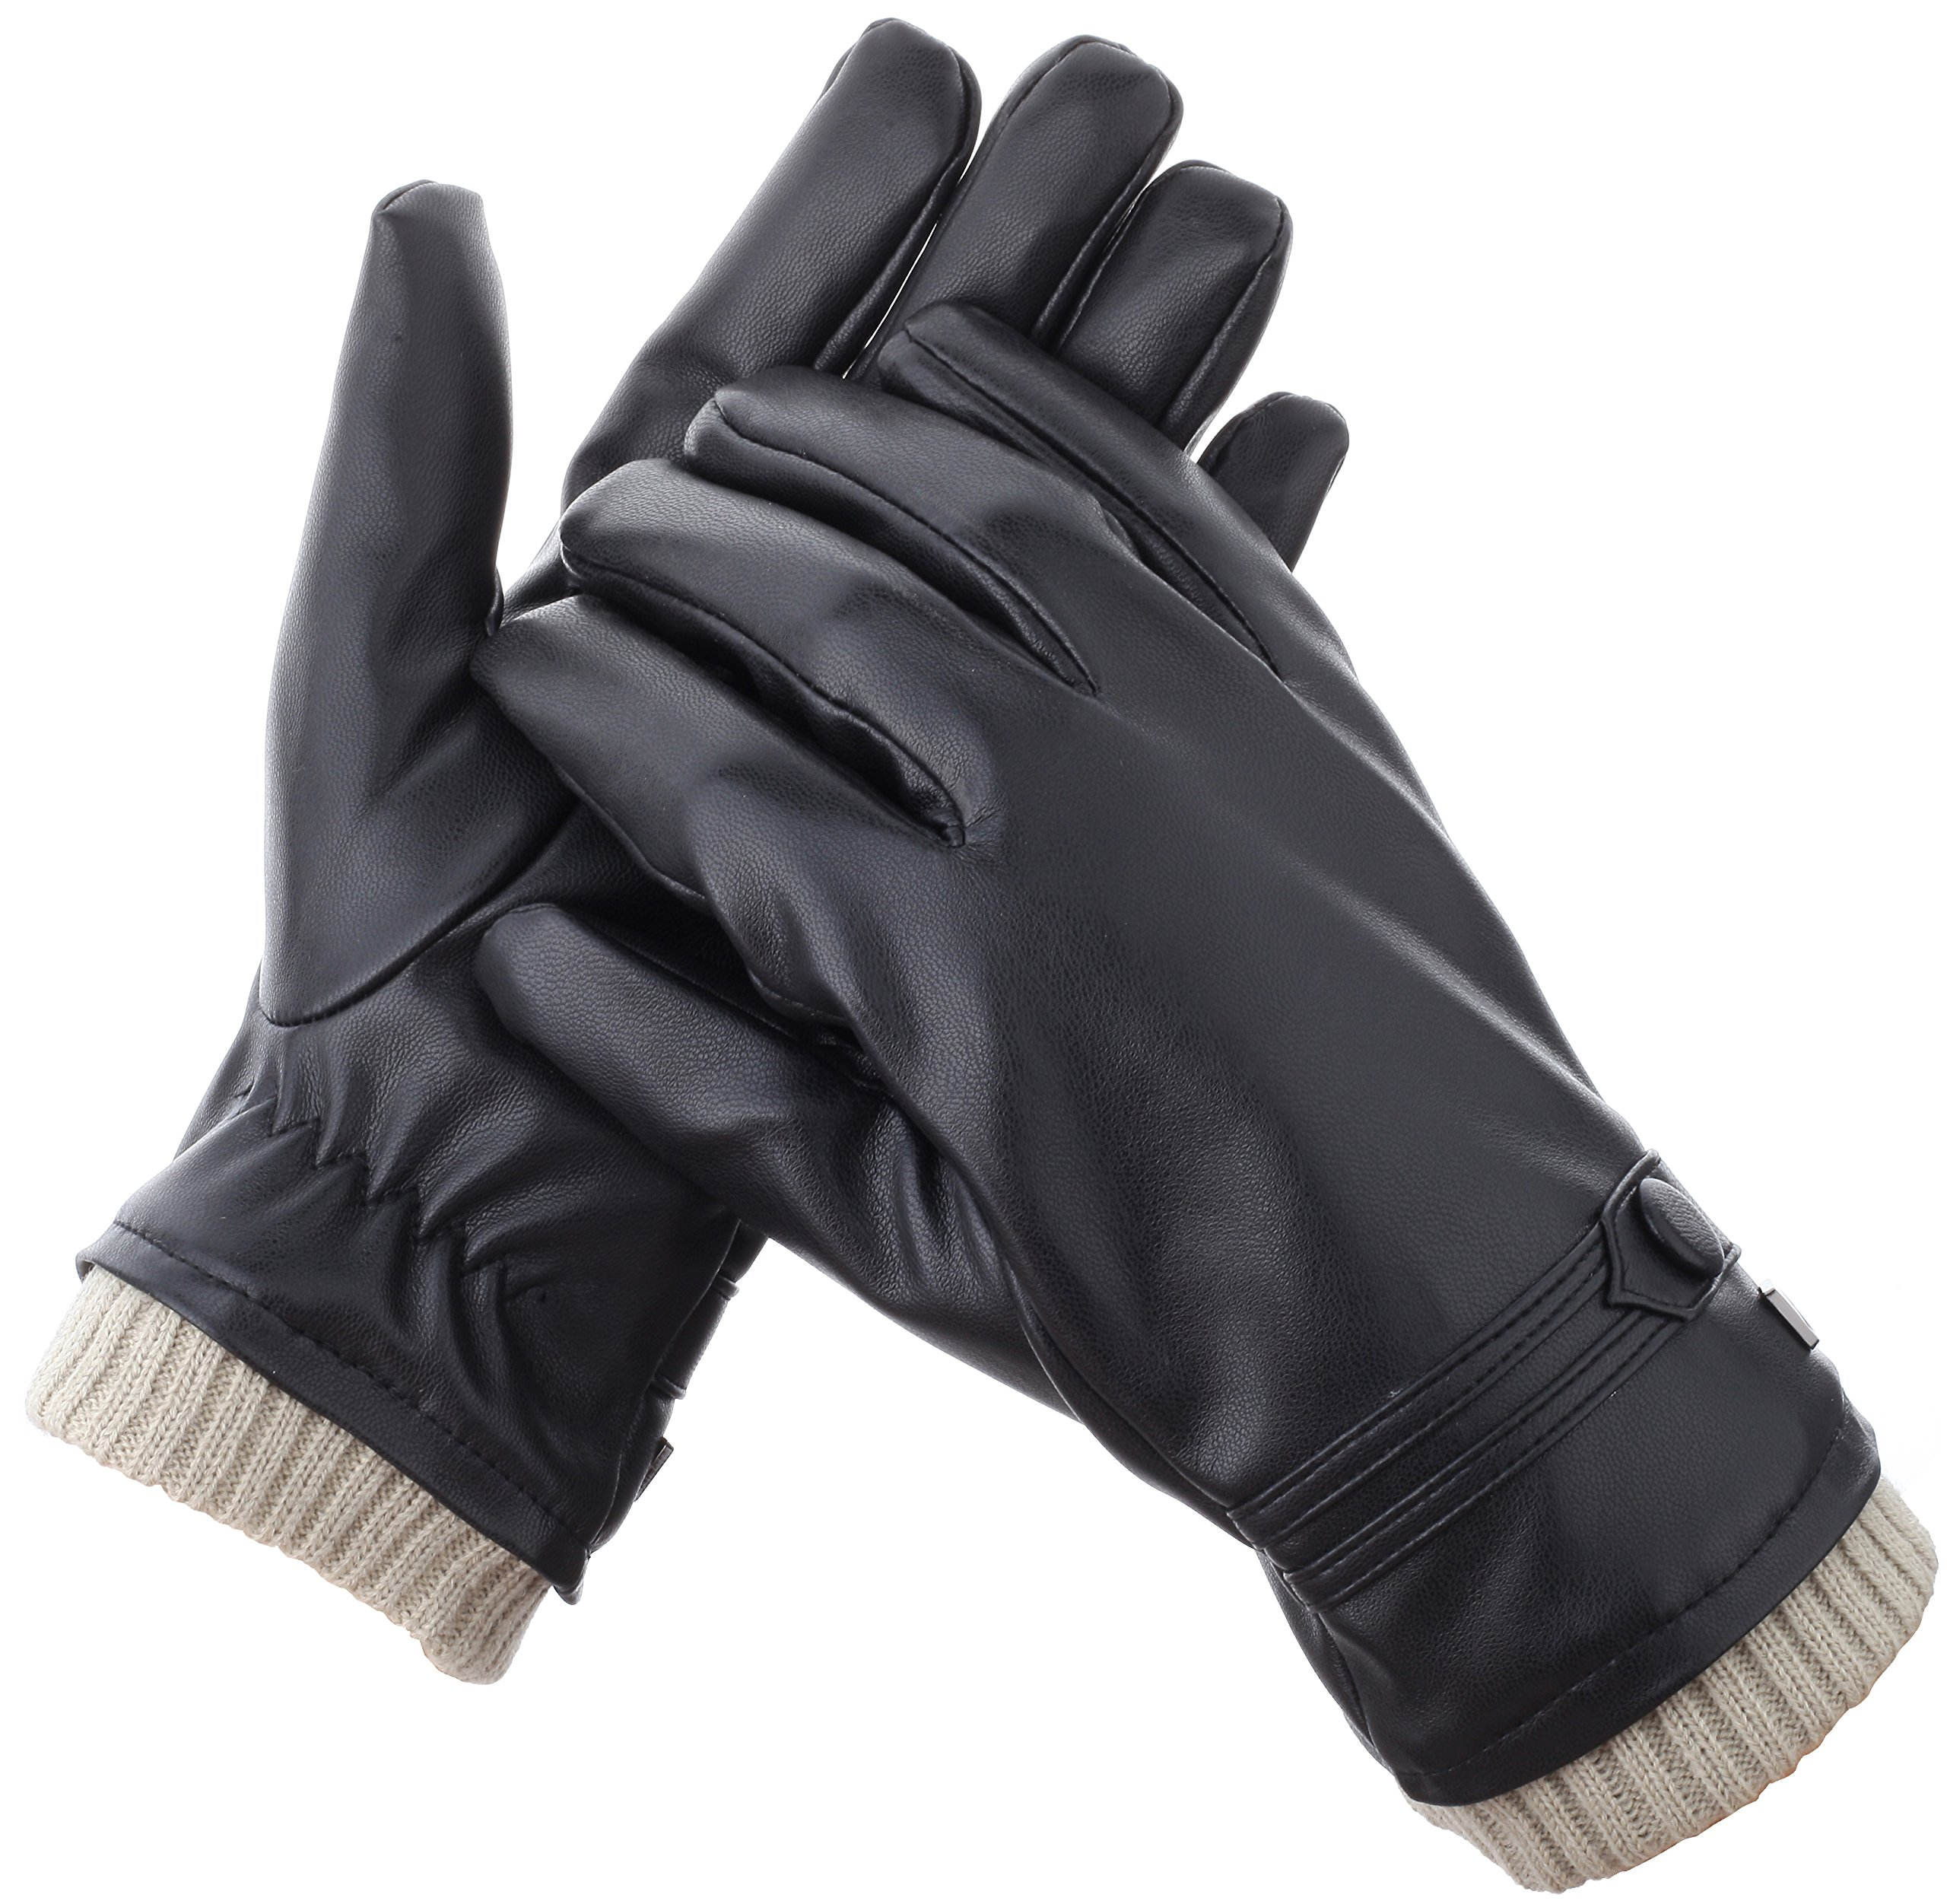 Gallery Seven Mens Faux Leather Warm Winter Gloves - Touch Screen Texting Glove - Gift Wrapped - Black Fine Button Style - Small by Gallery Seven (Image #2)